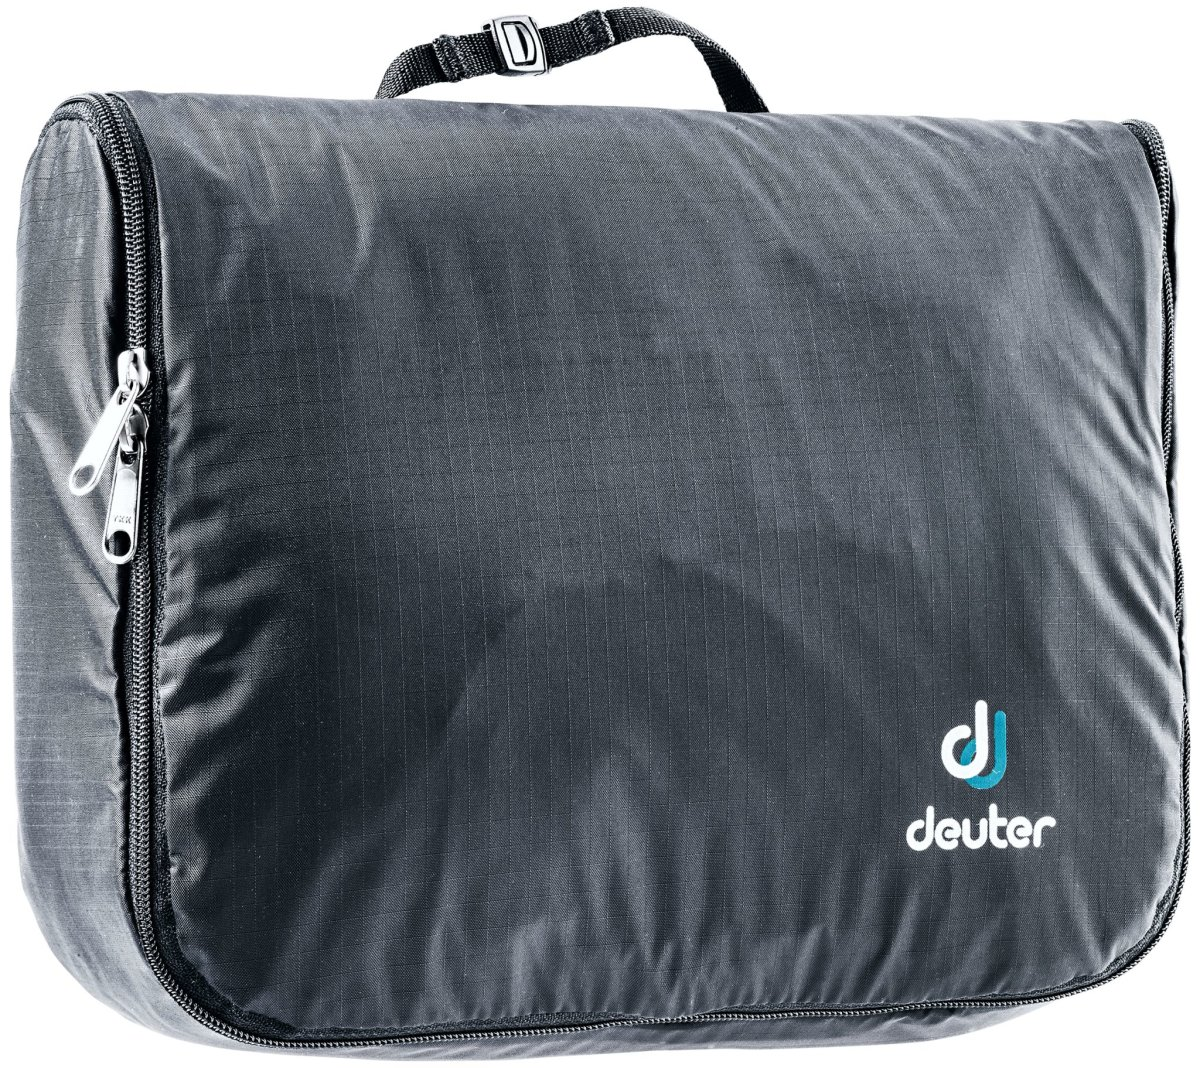 Косметичка Deuter Wash Center Lite II black 3900320 7000